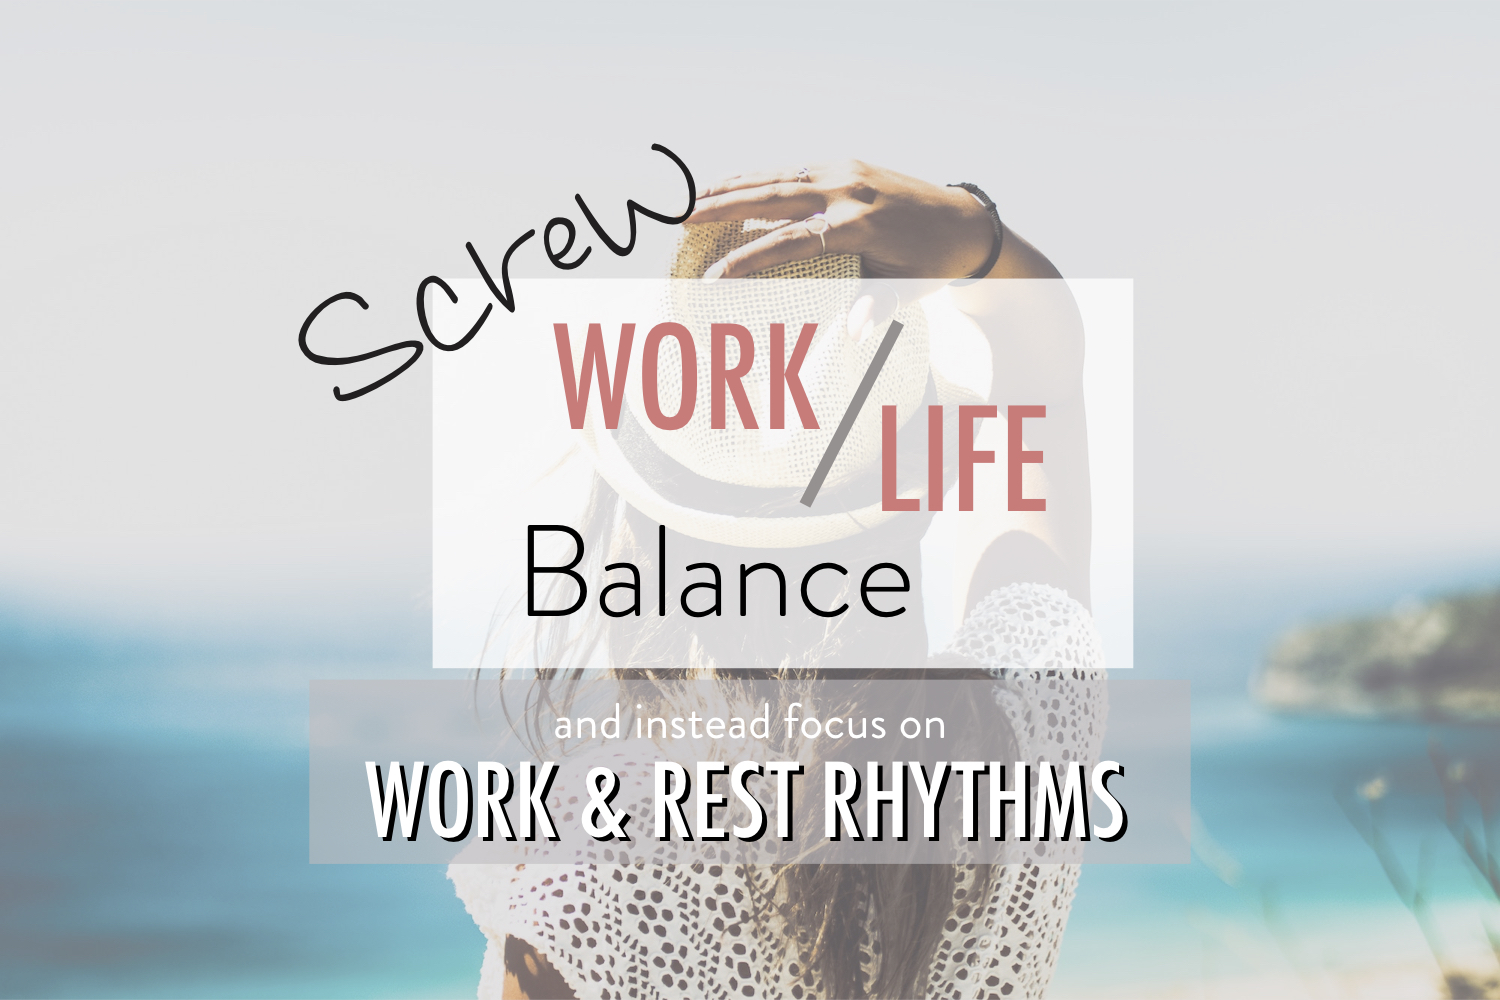 Screw Work Life Balance - Stacy Kessler wide.jpeg.001.jpeg